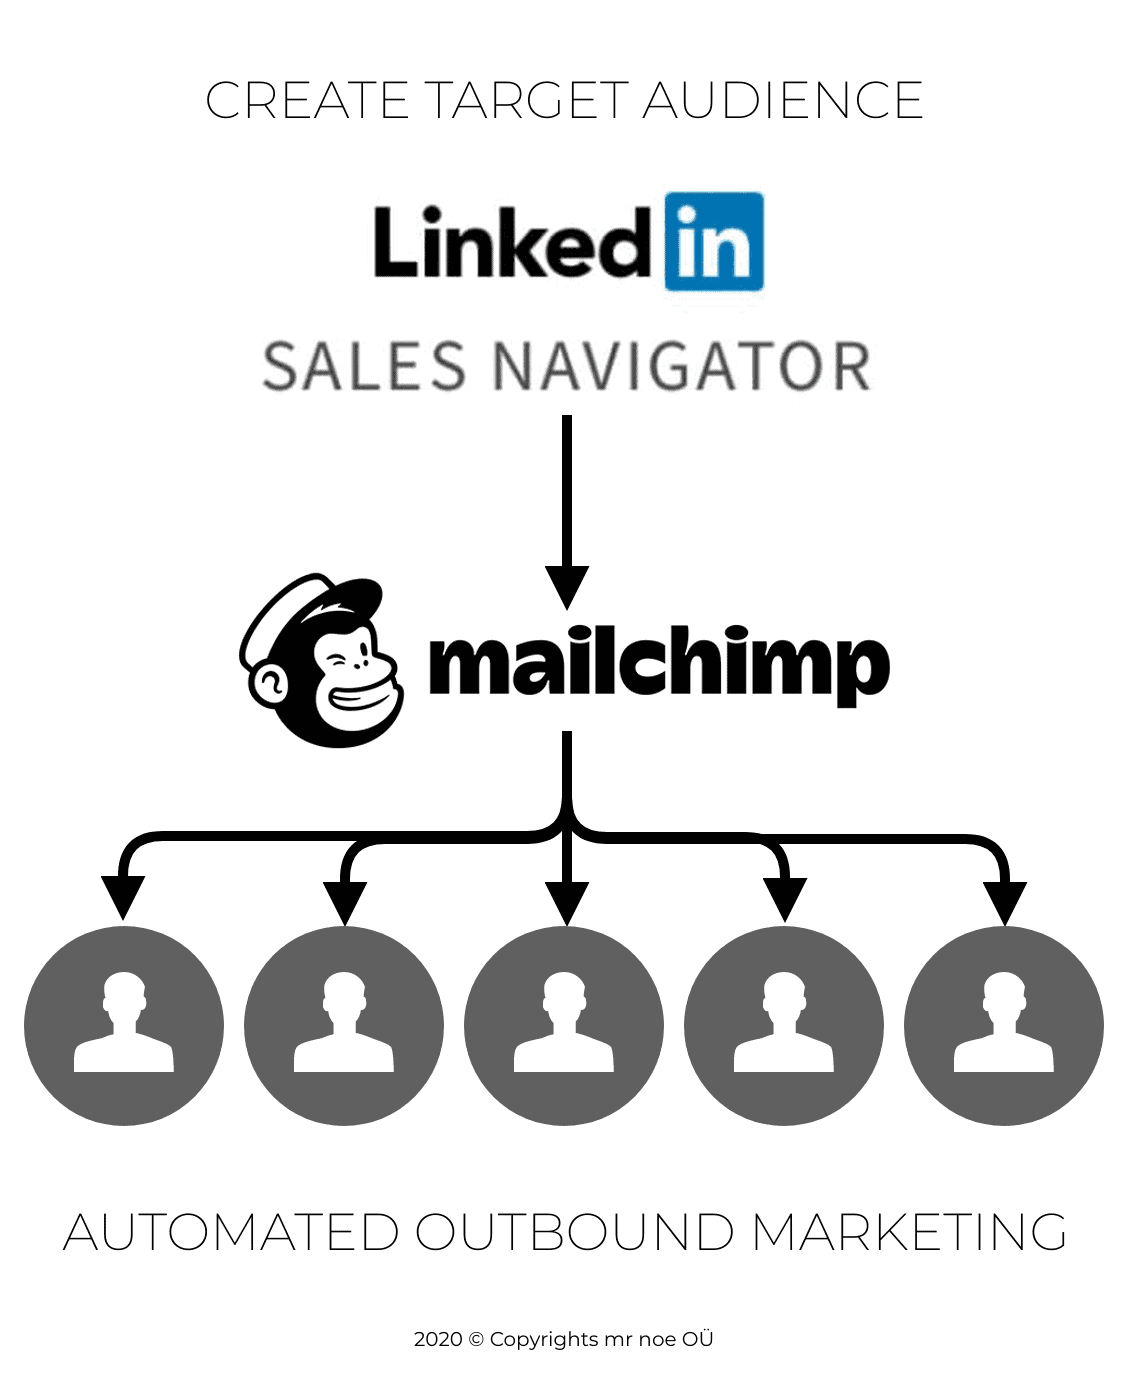 OUTBOUND MARKETING WITH MAILCHIMP